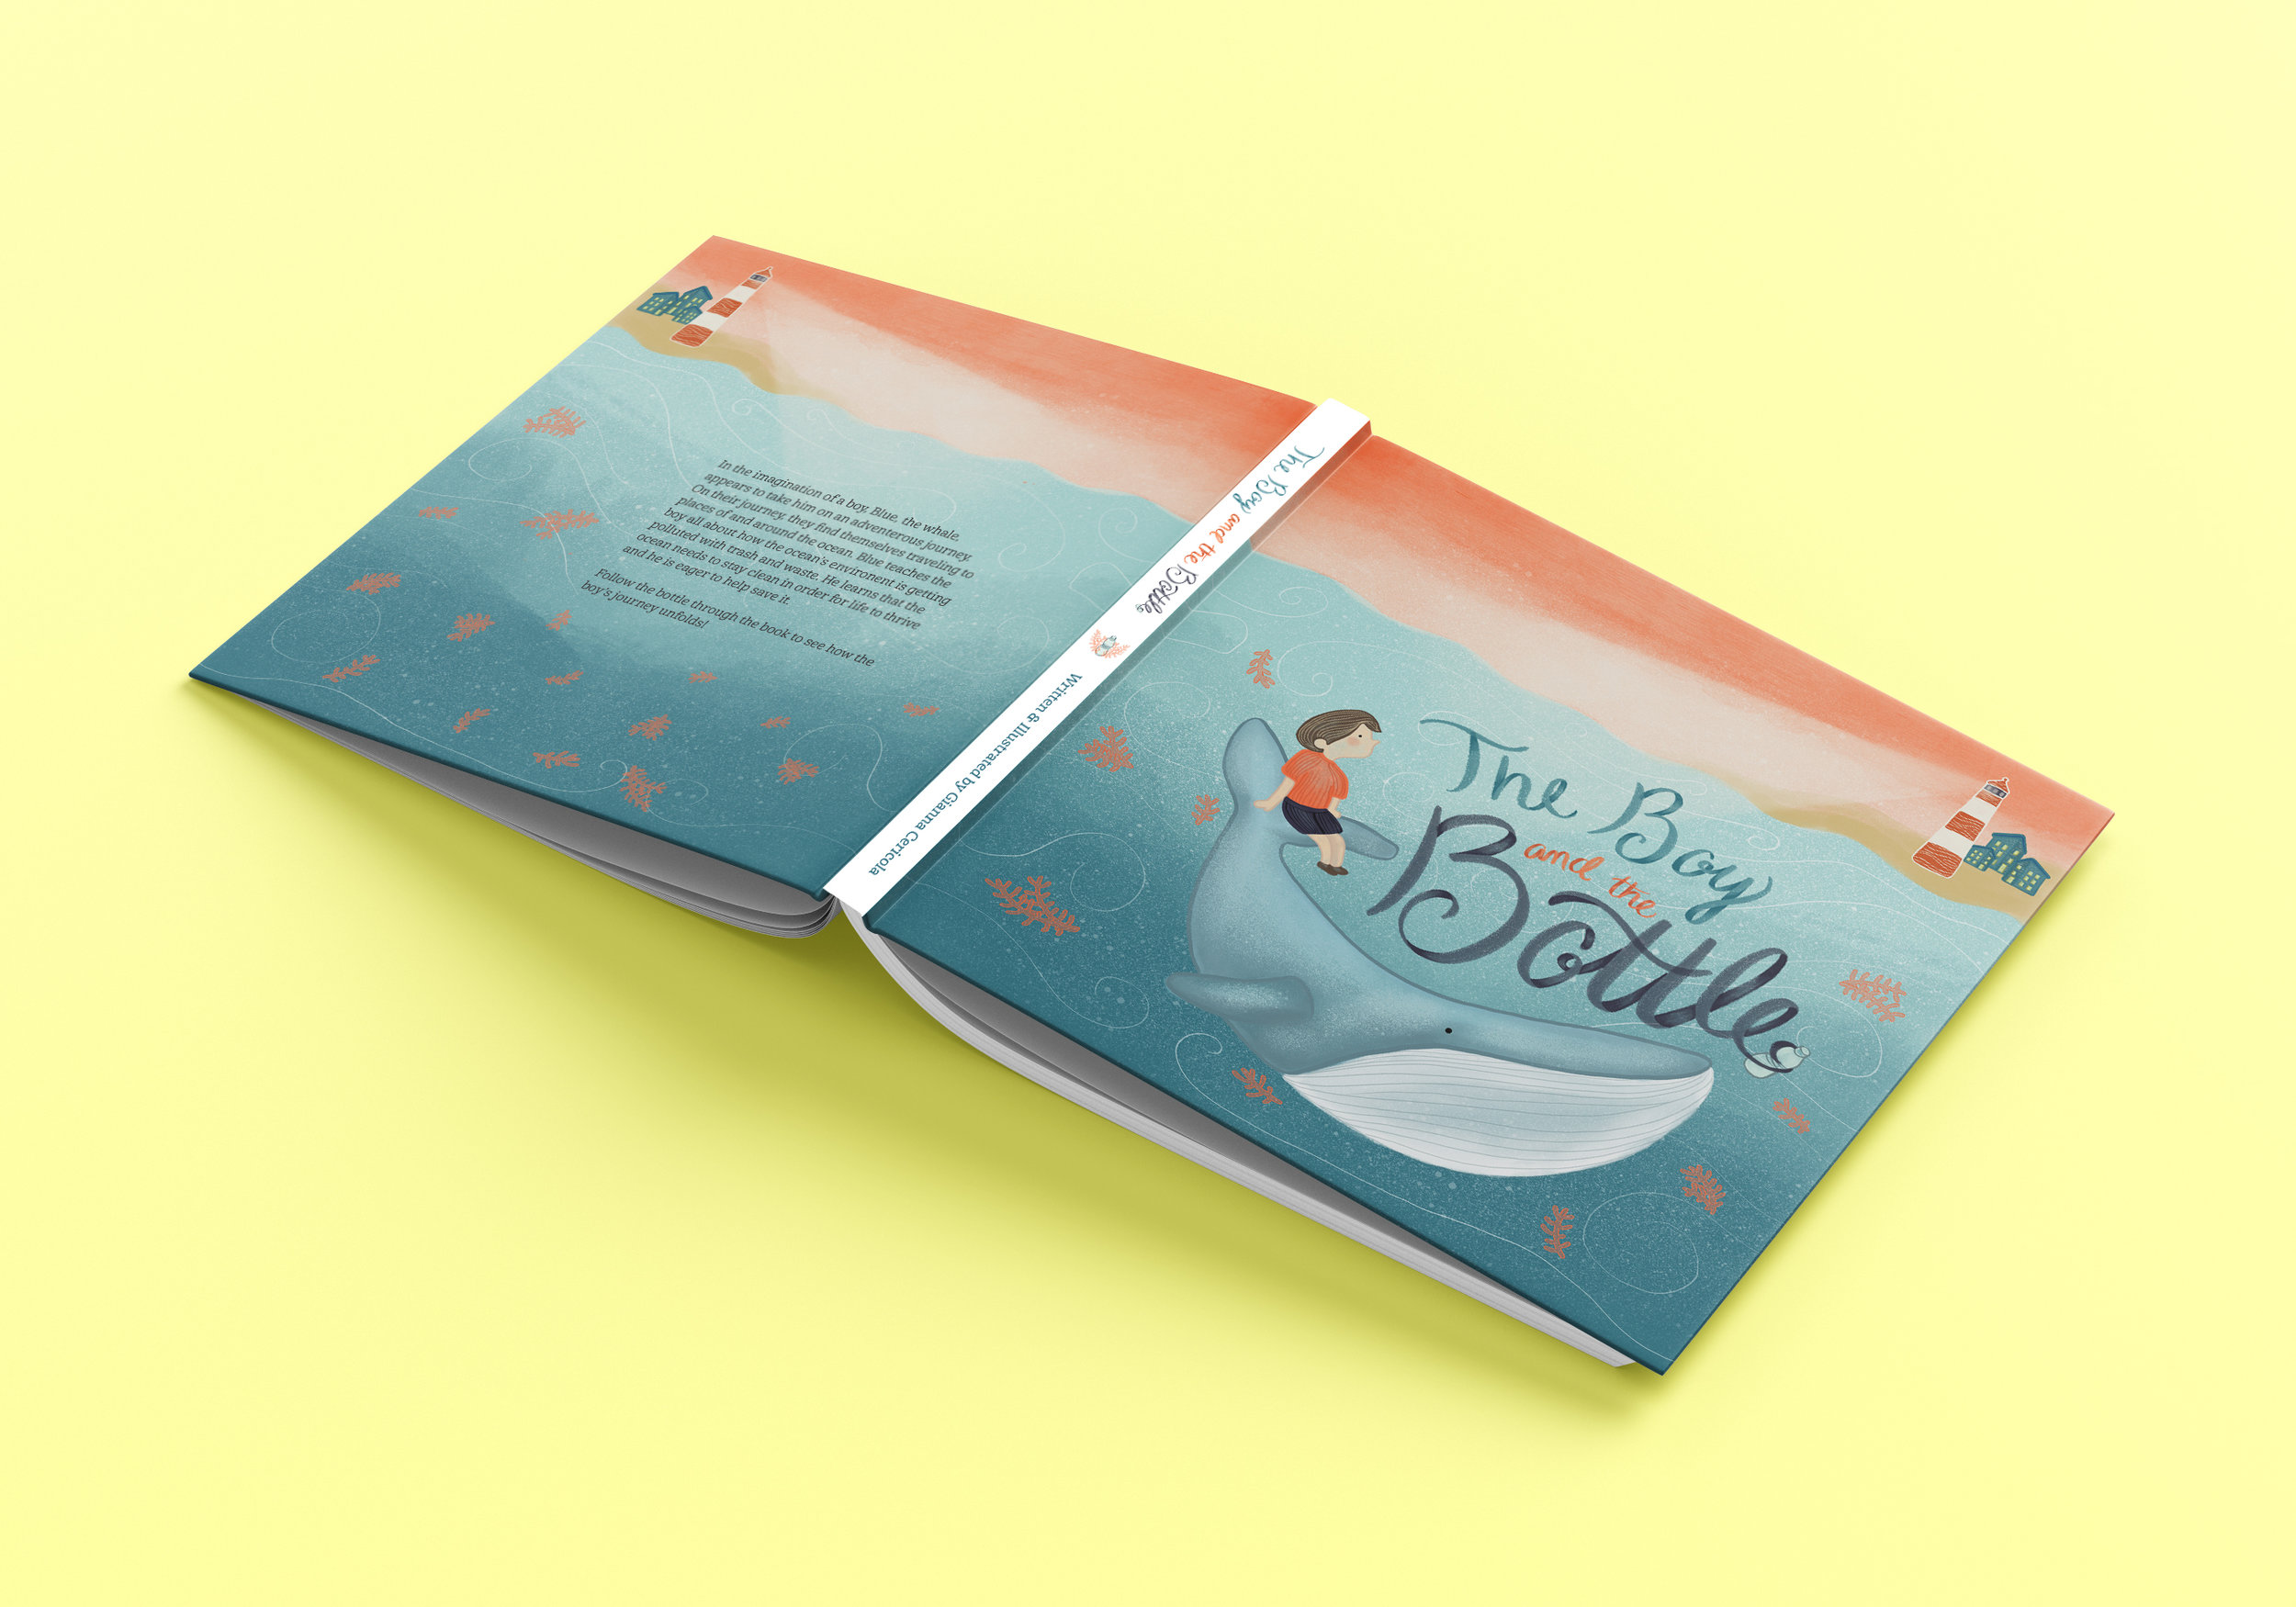 Solution - Illustrating and writing a children's book that informs kids about how to protect the ocean and environment.